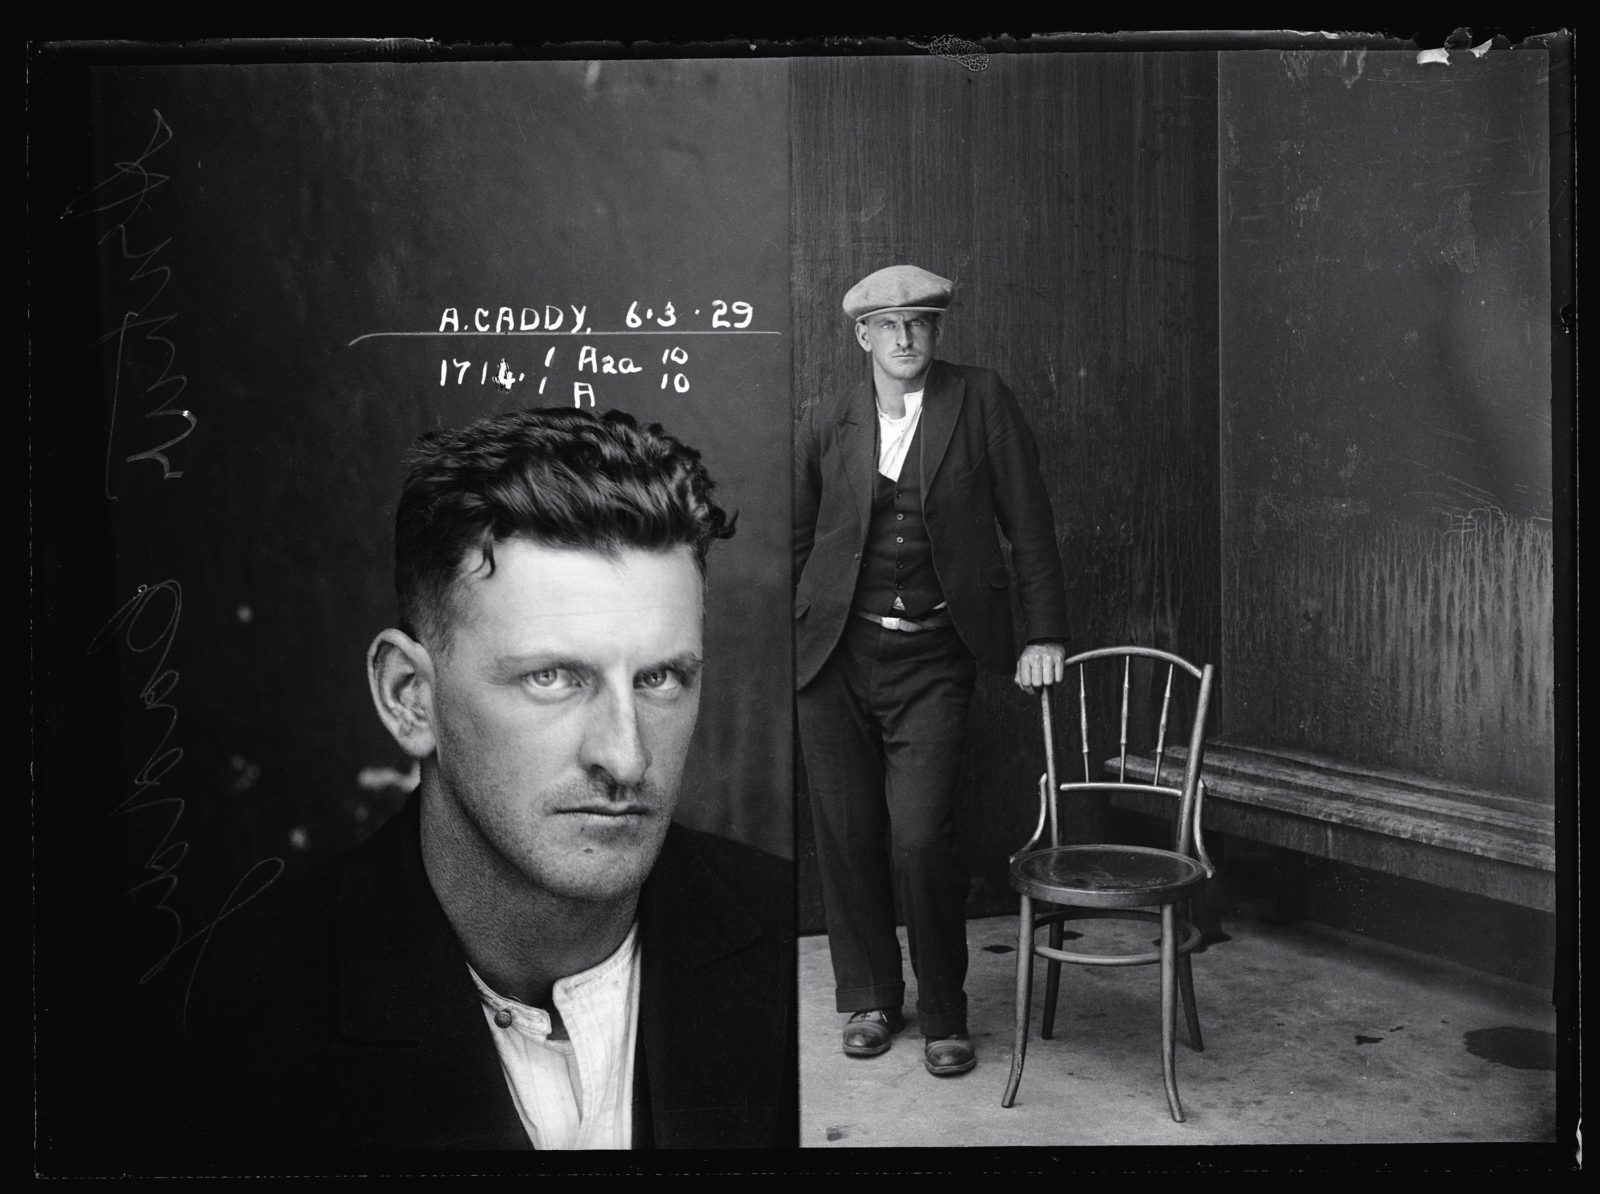 Arthur Caddy, 6 March 1929, Suspect, offence unknown, Special Photograph number 1714, NSW Police For